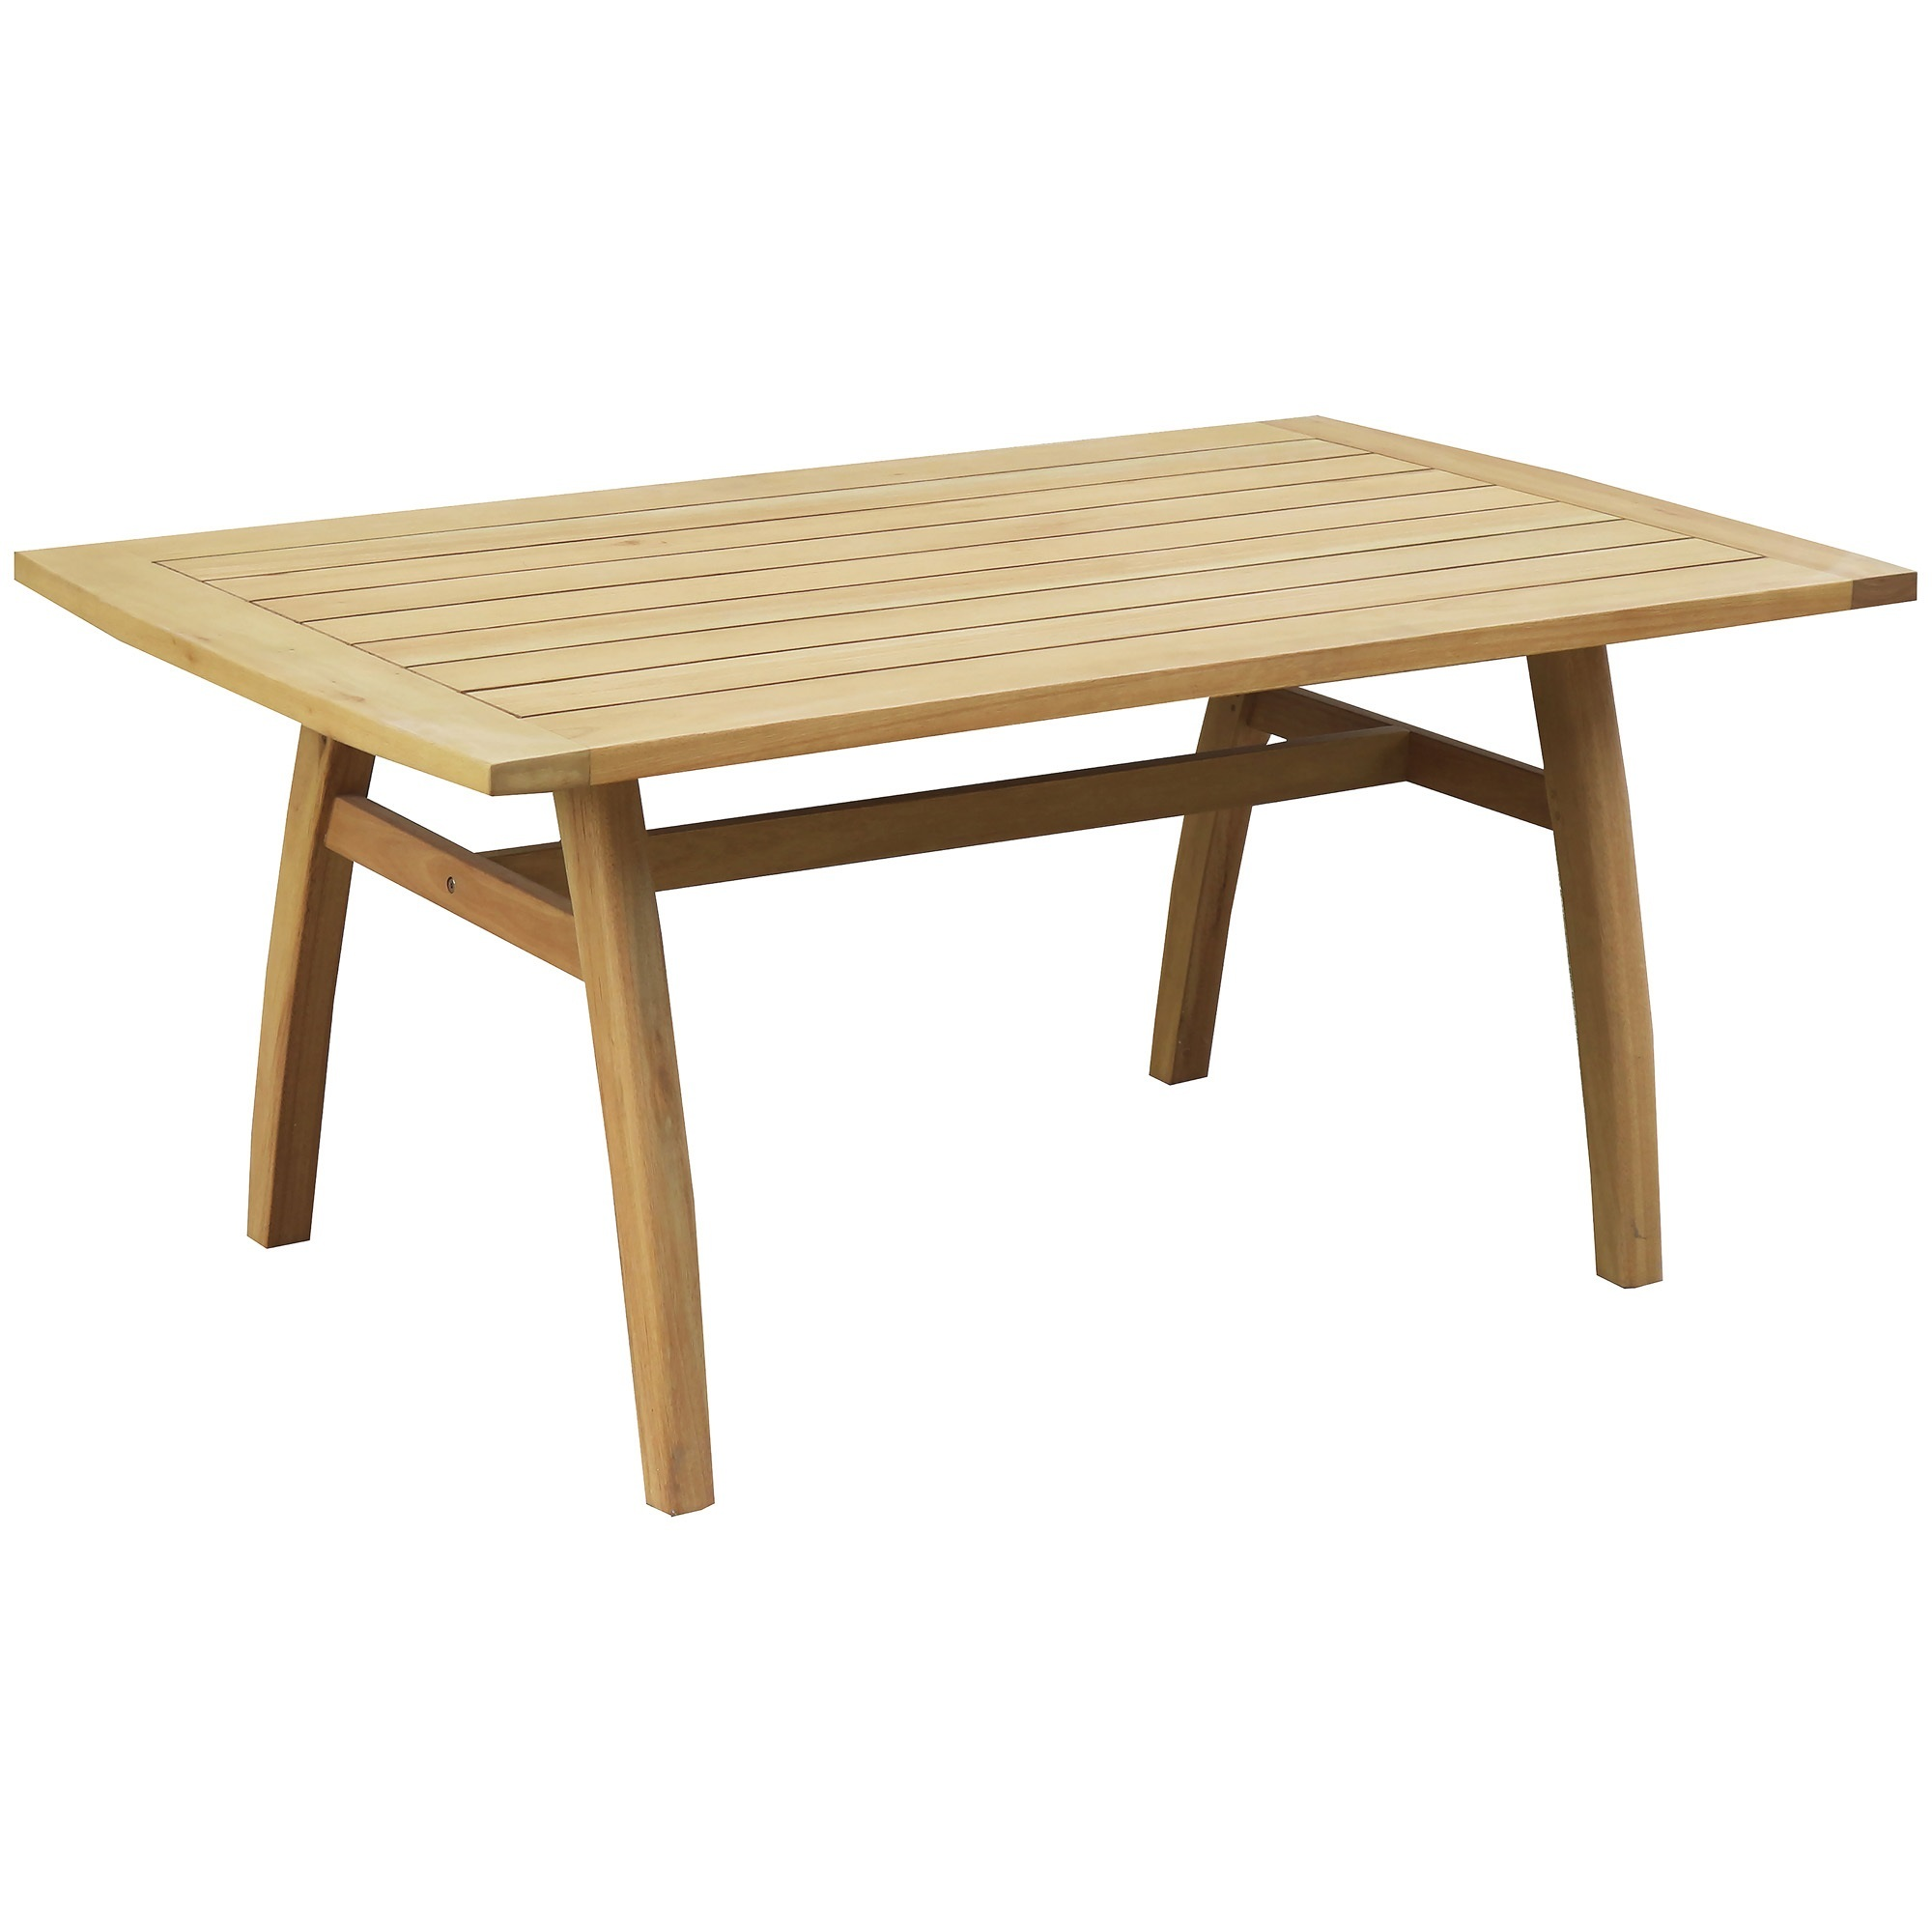 Maya Outdoor Furniture Napa Wooden Outdoor Dining Table Reviews Temple Webster - Outdoor Furniture Clearance Toowoomba